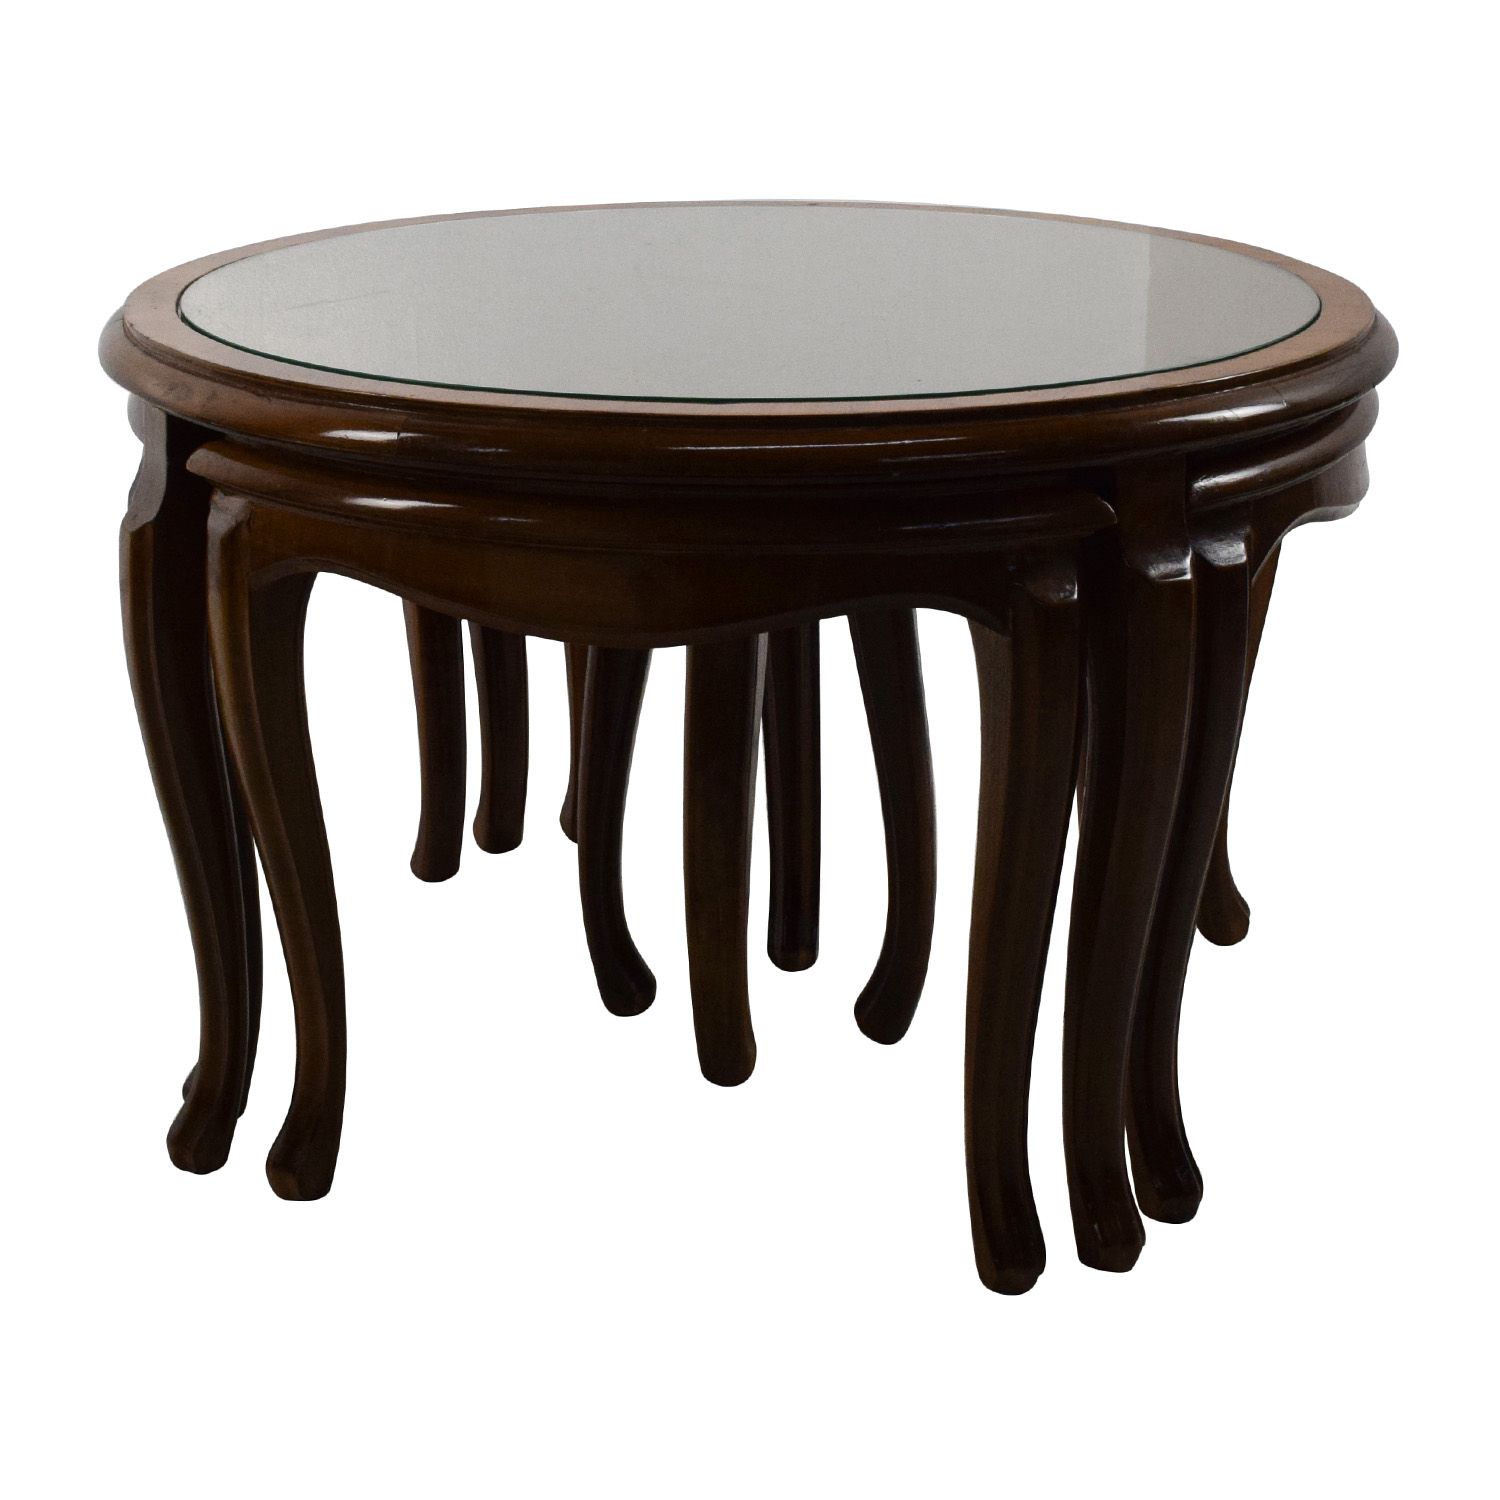 Round Table With Stools: Round Glass Top Coffee Table With 4 Nesting